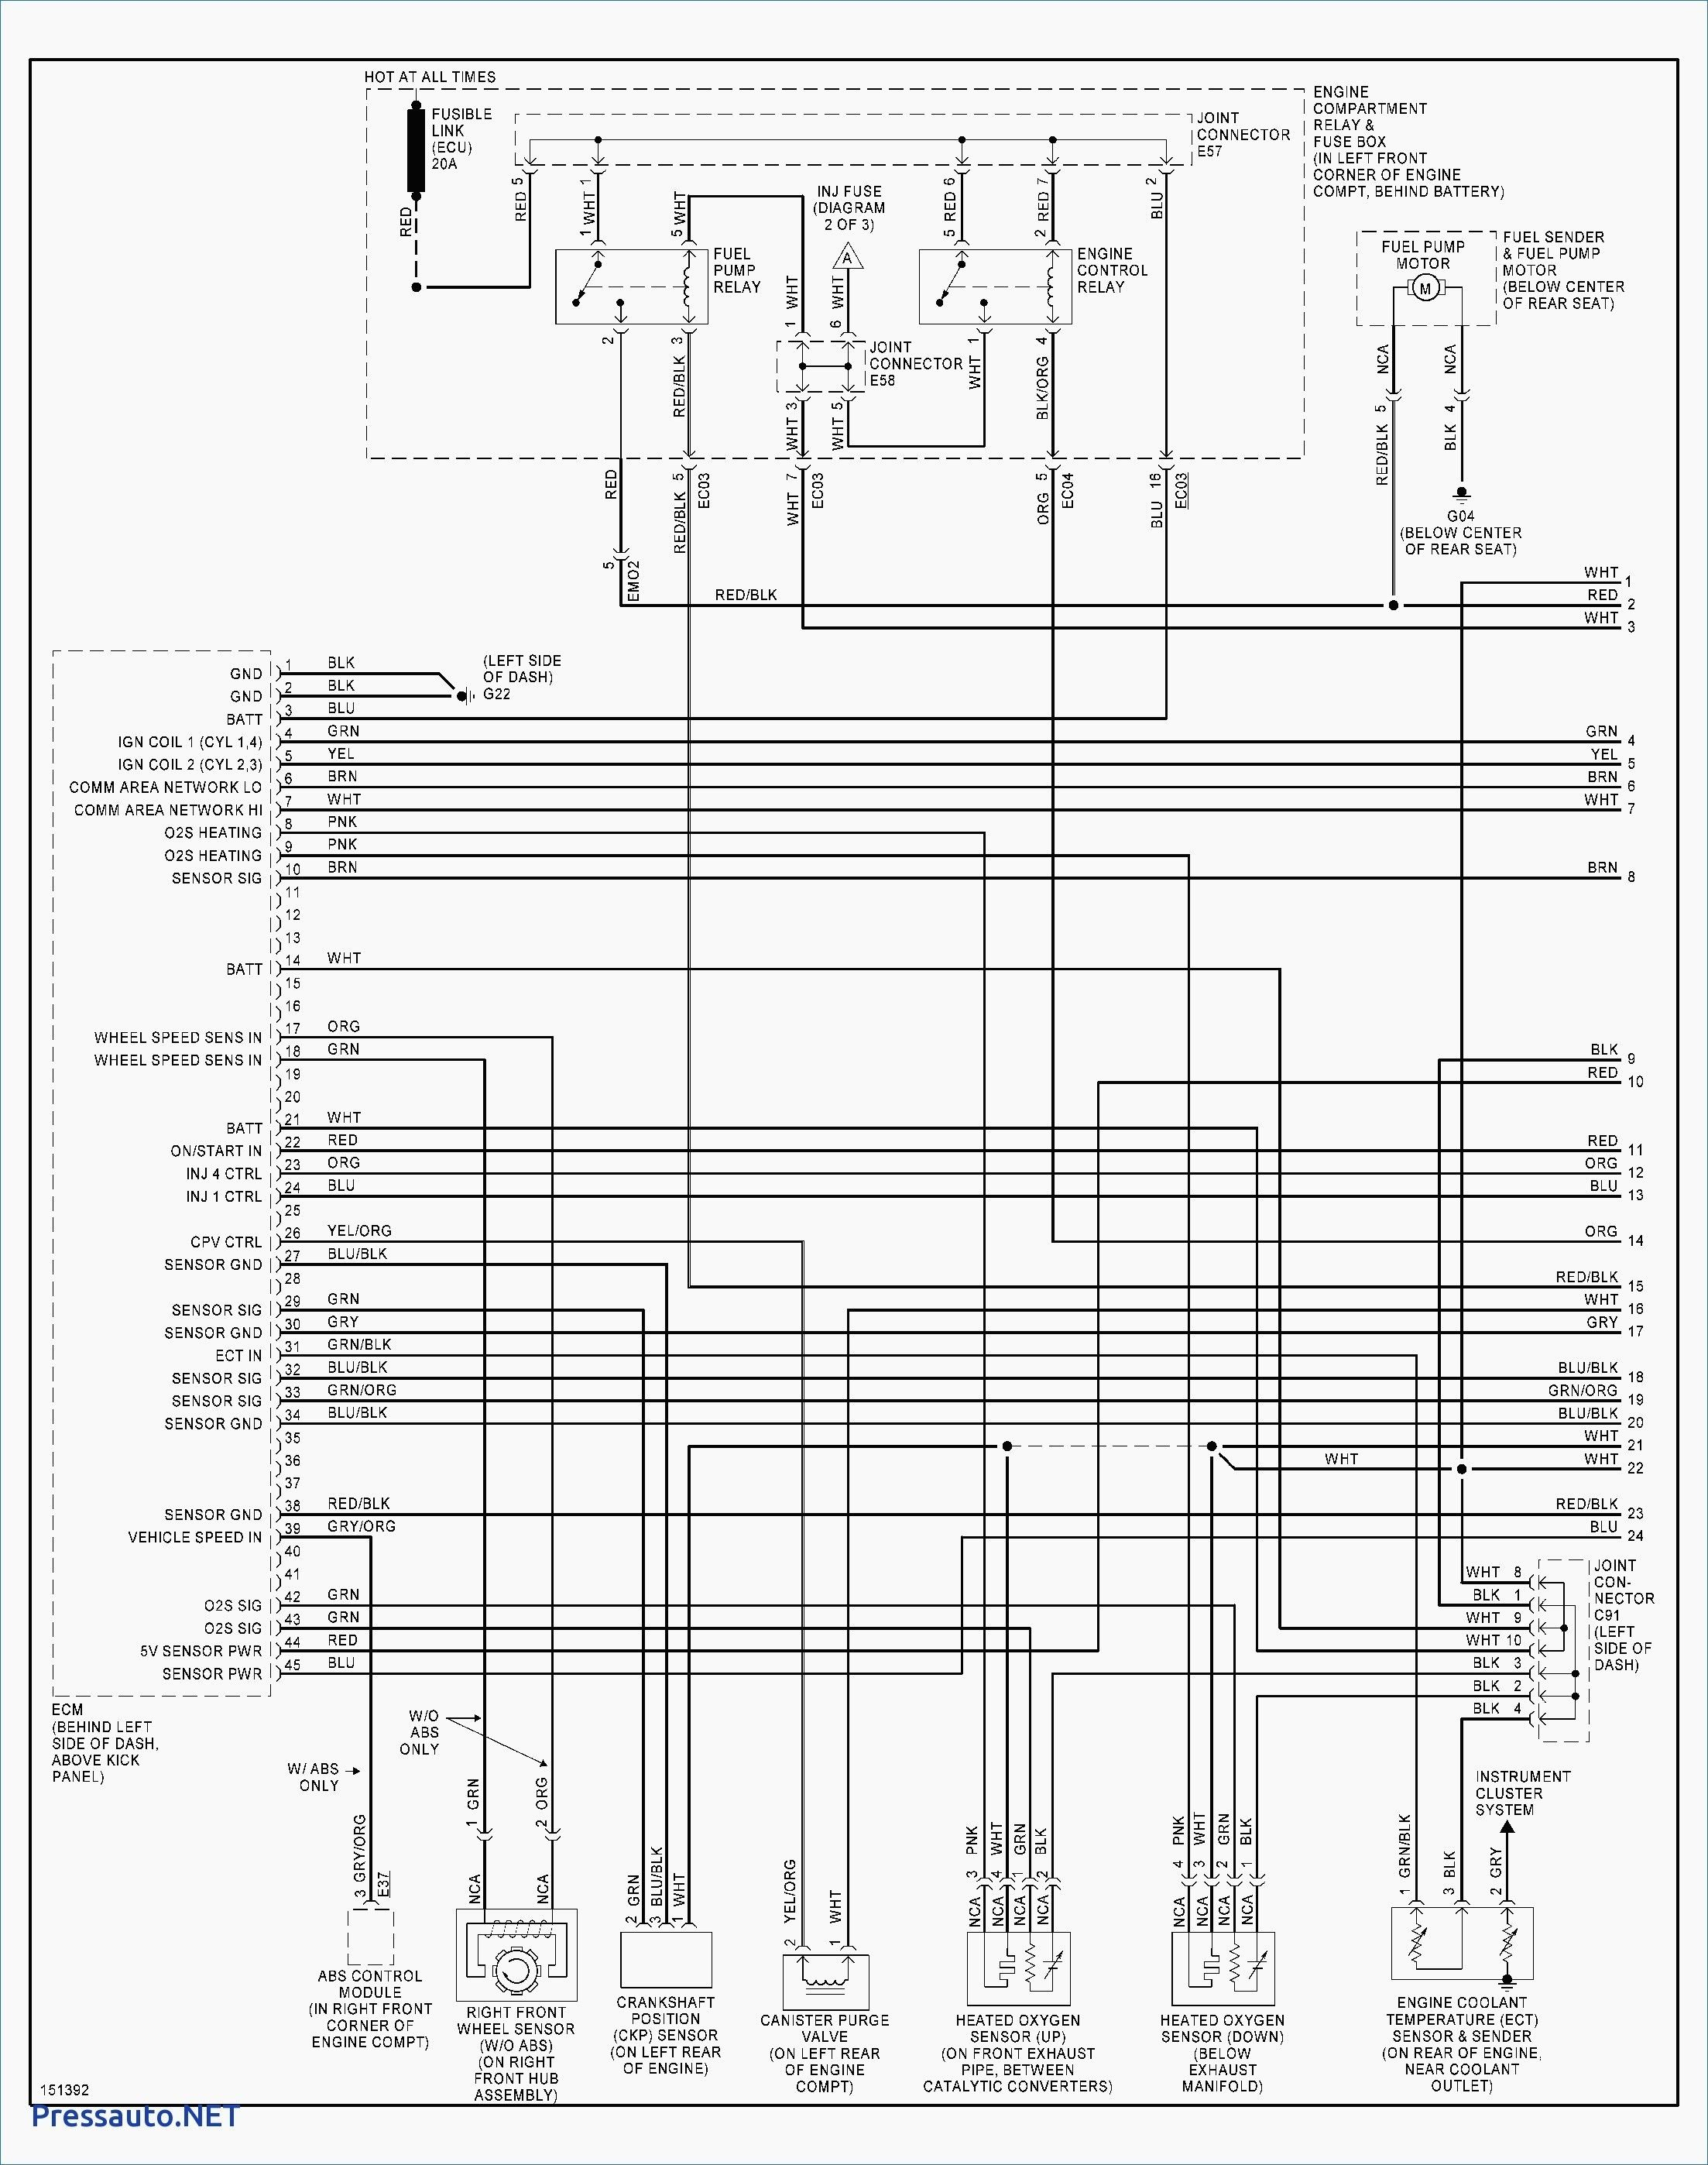 Hyundai Accent Injector Wiring Diagram - Wiring Diagram Data teach-process  - teach-process.portorhoca.it | Hyundai Accent Crdi Wiring Diagram |  | teach-process.portorhoca.it